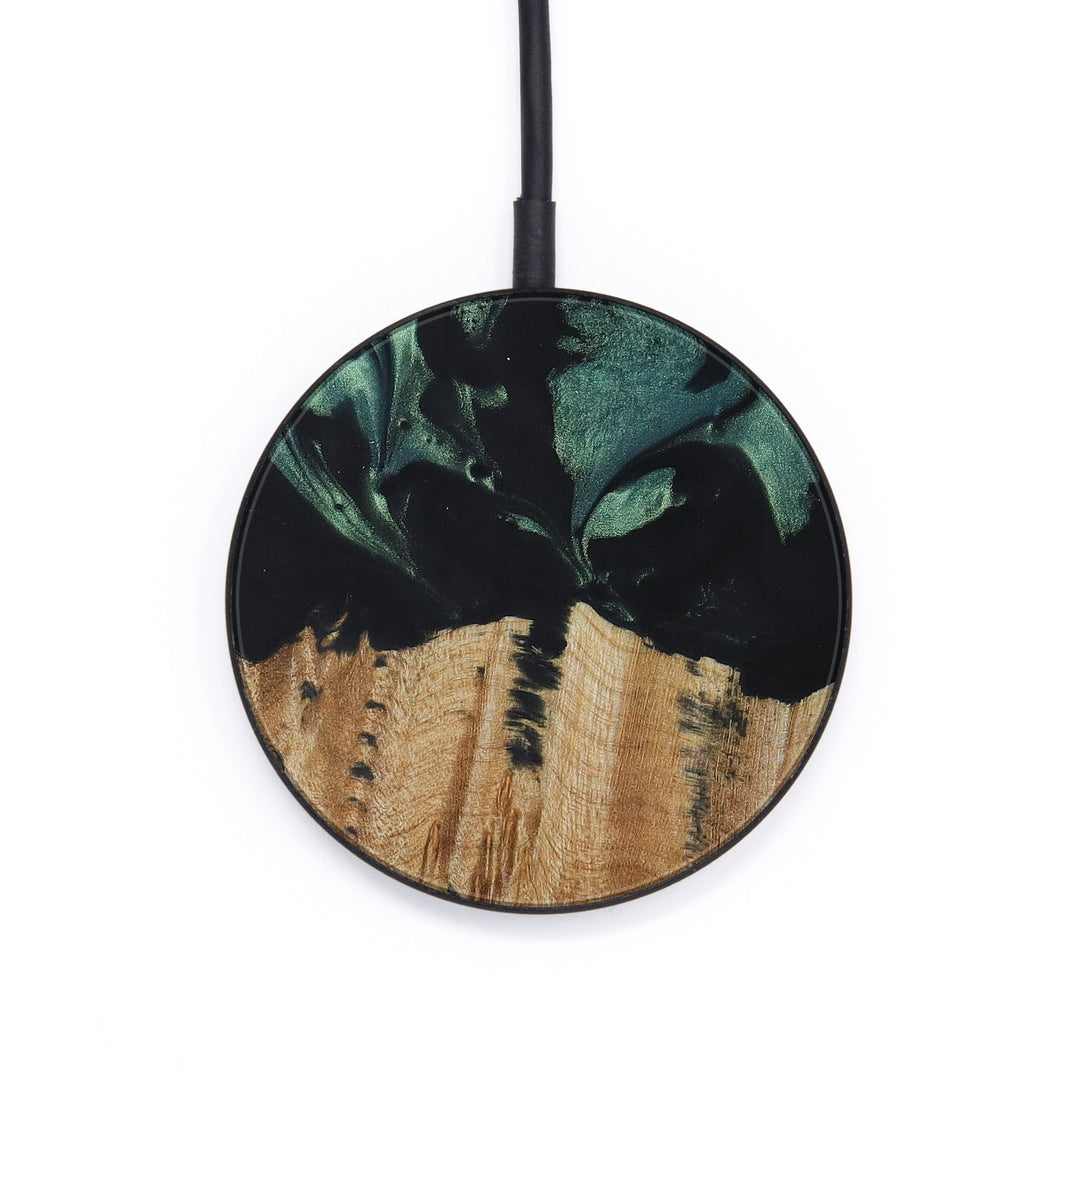 Circle Wood+Resin Wireless Charger - Norry (Dark Green, 420310)